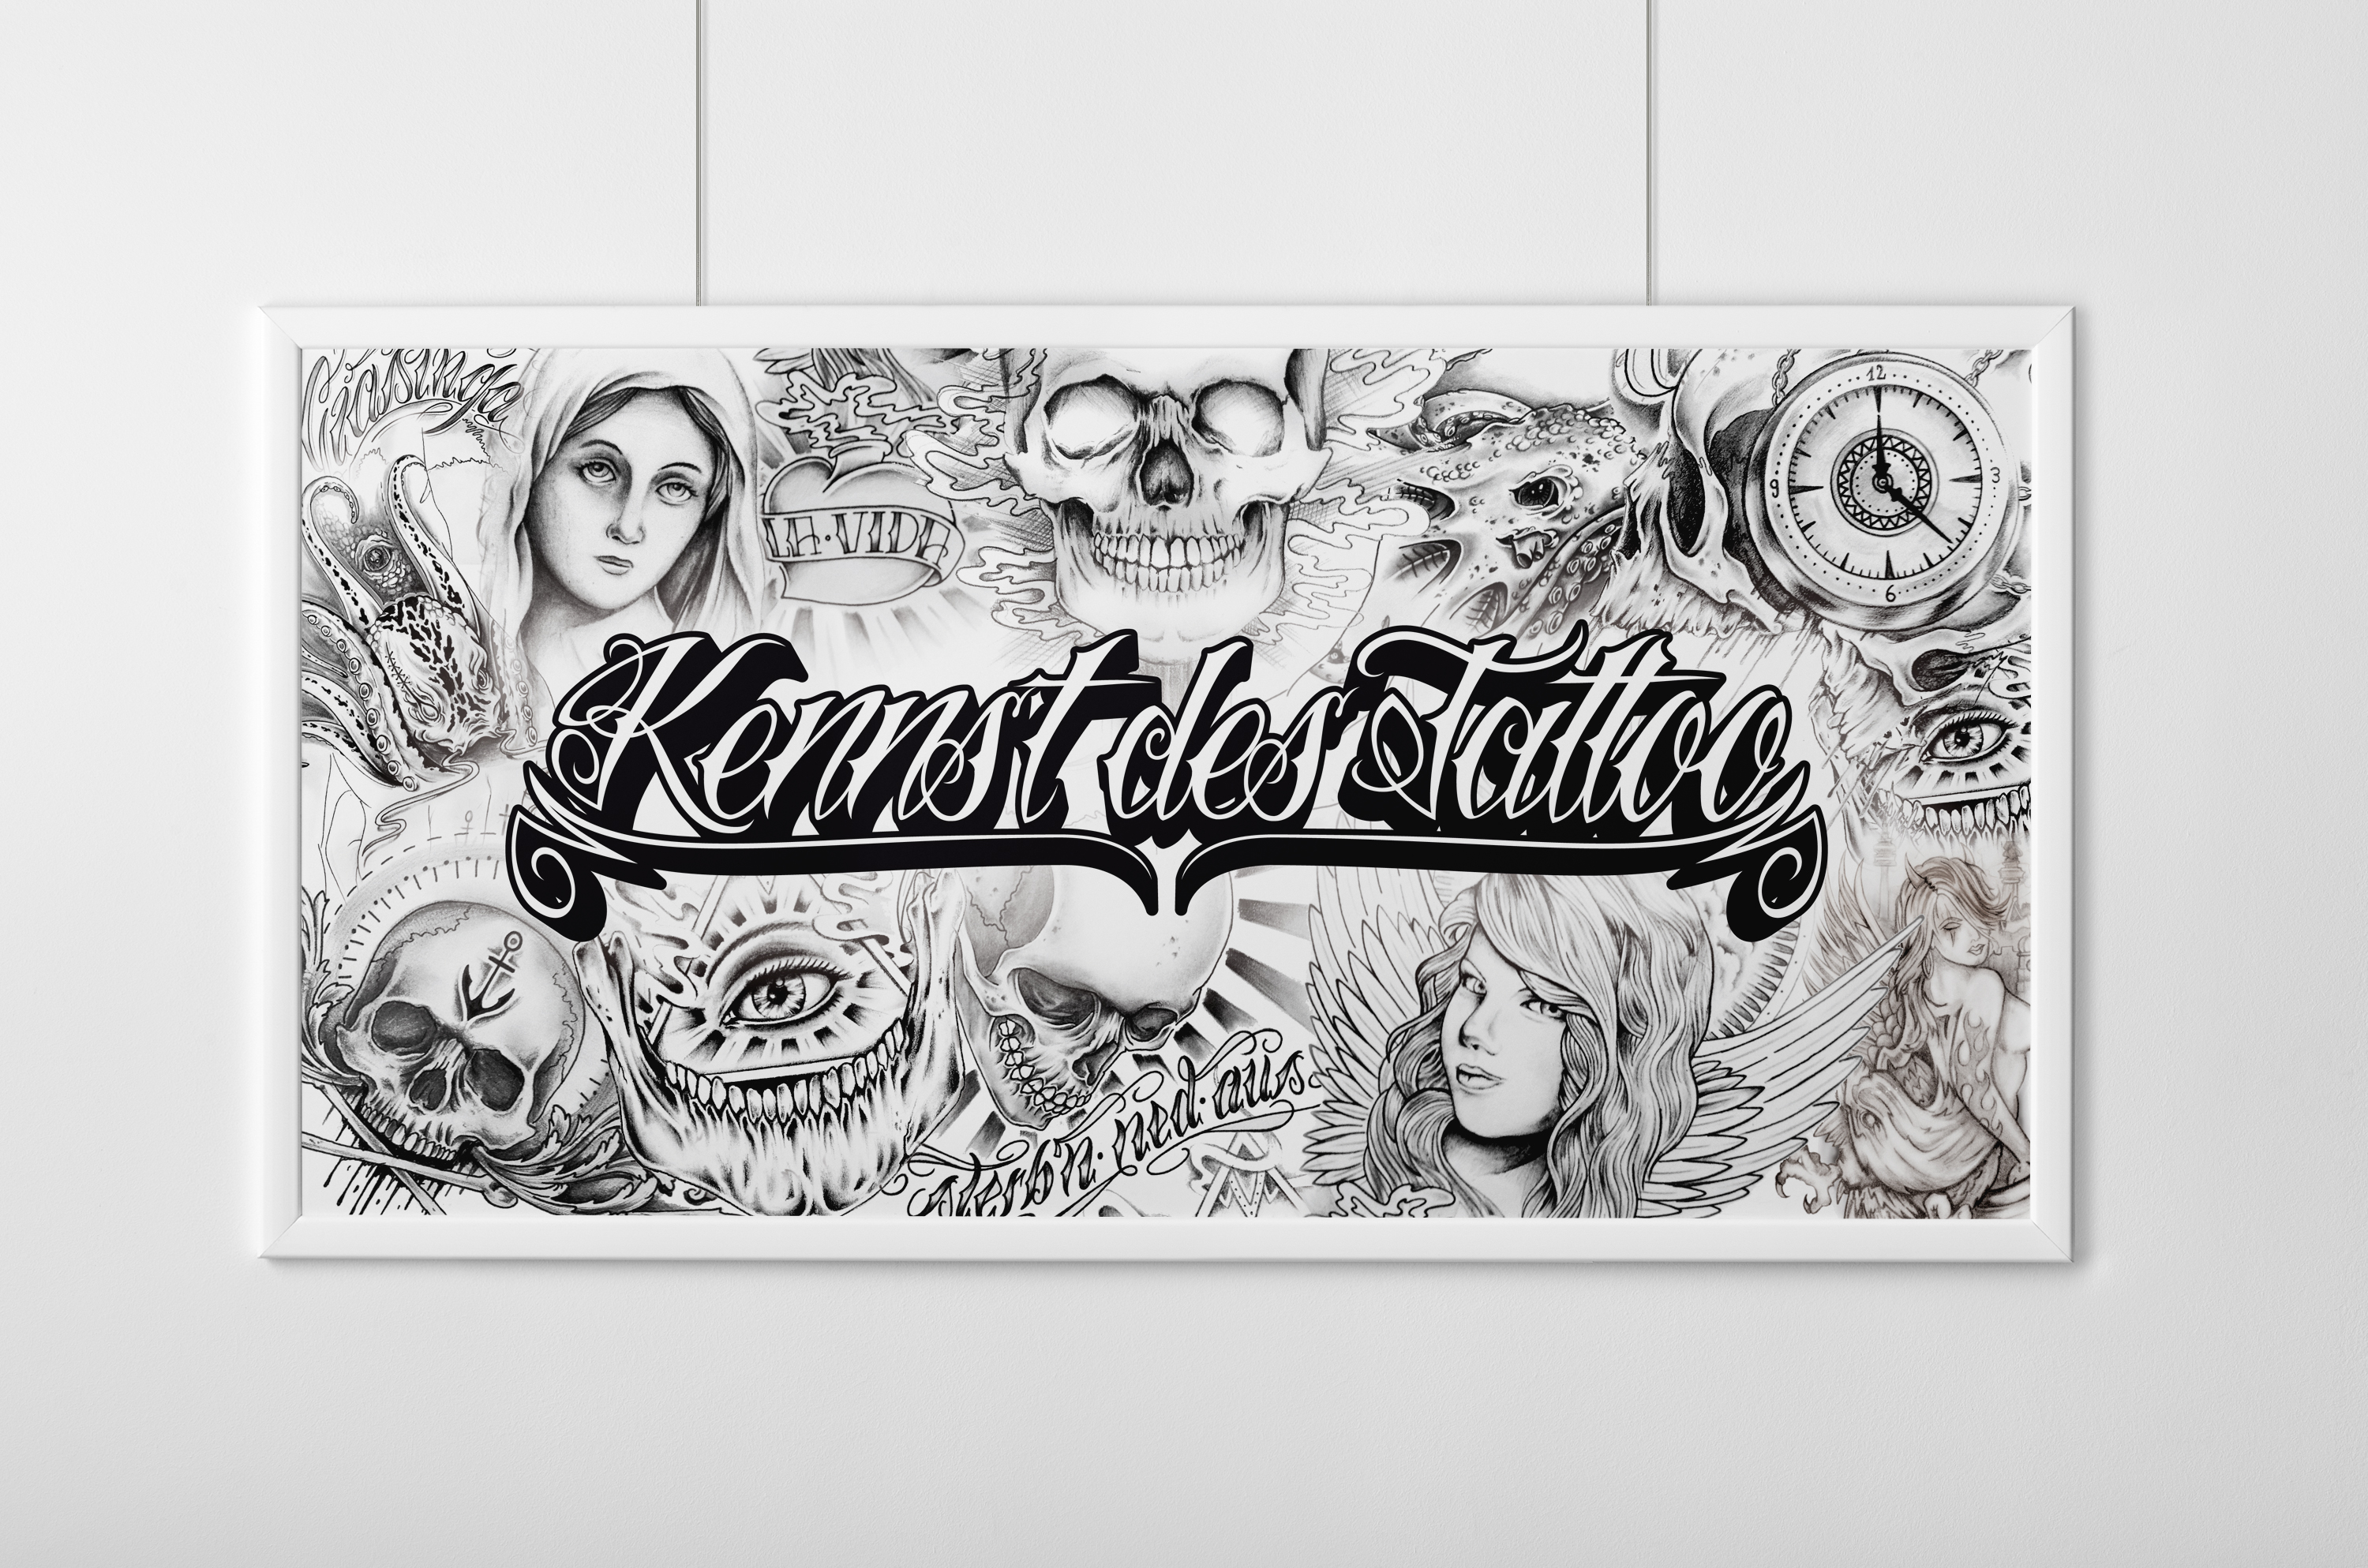 KennstdesTattoo_Banner.jpg?fit=3000%2C1987